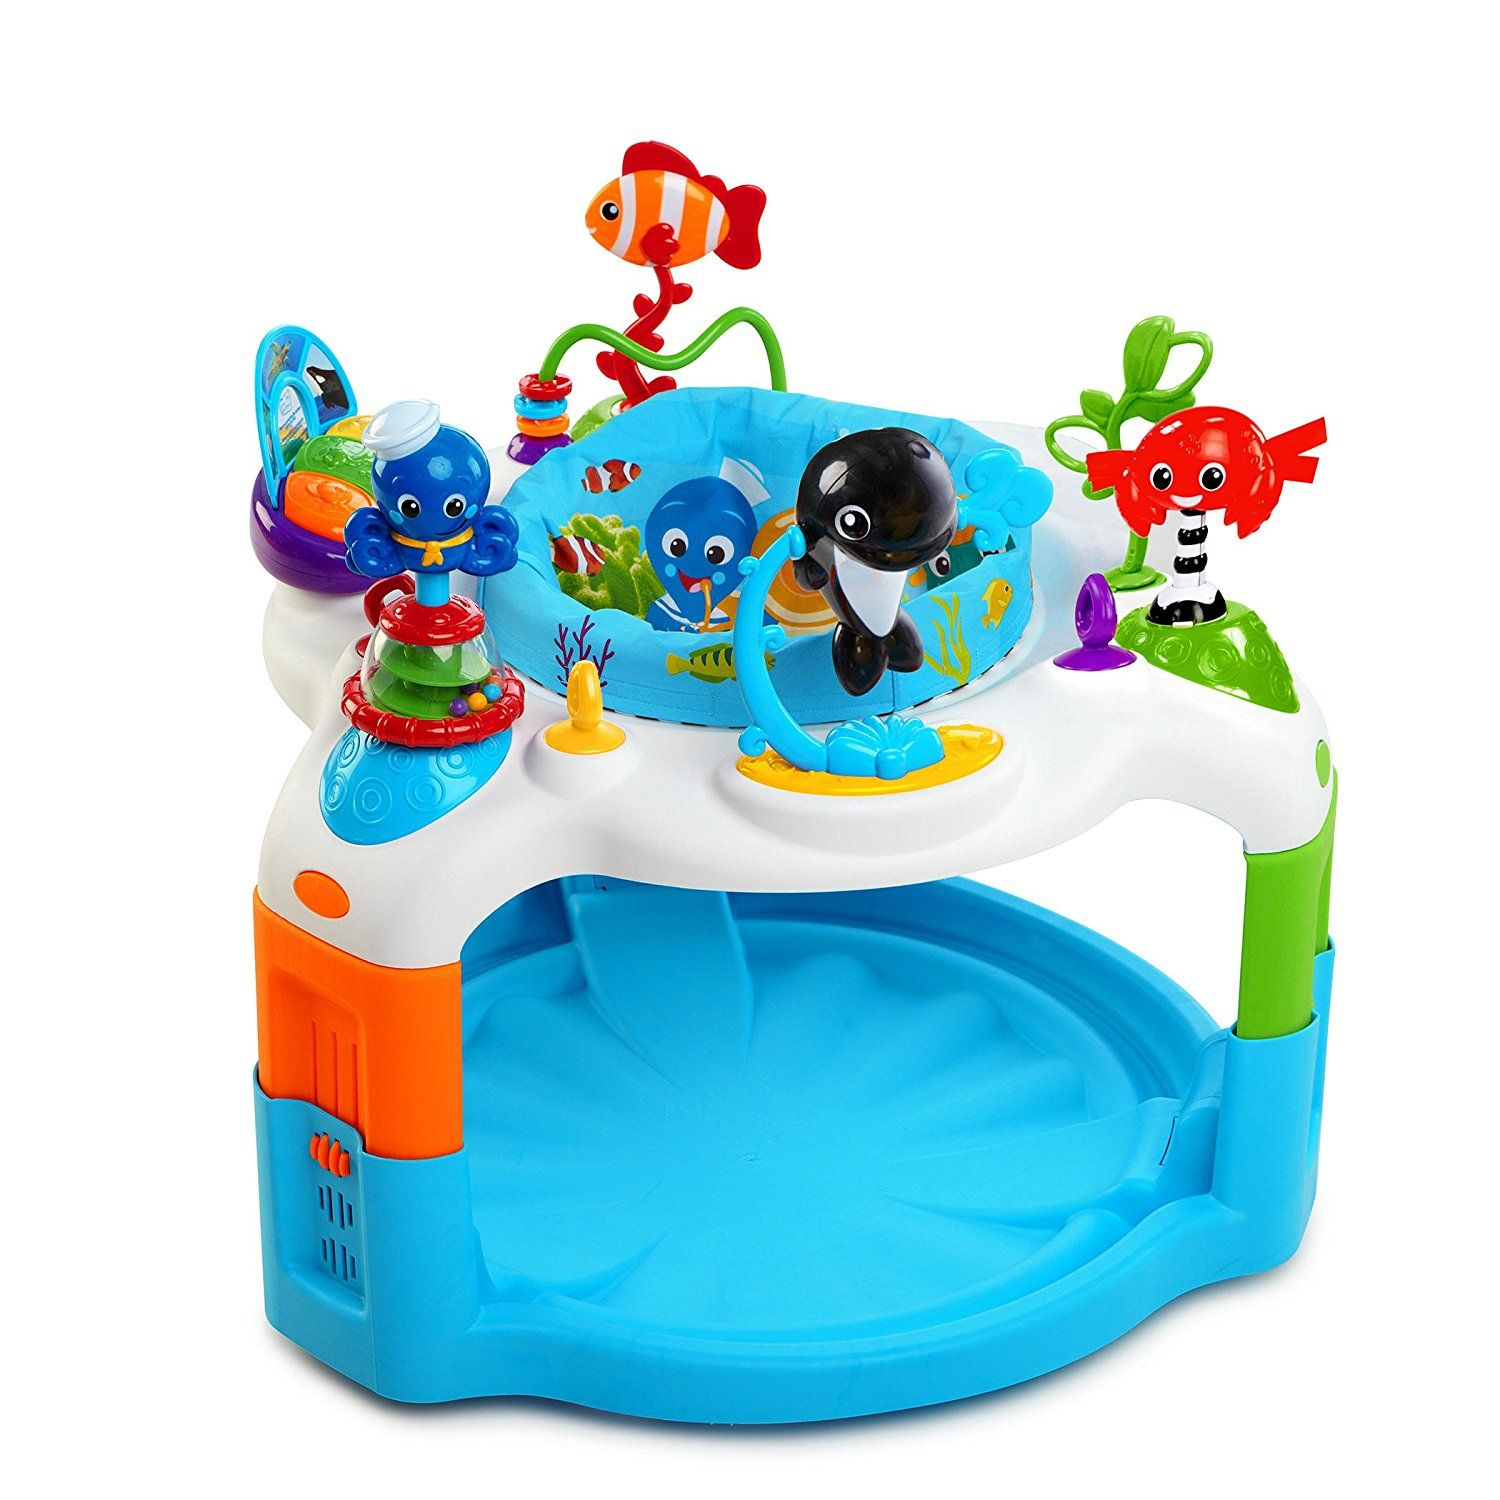 Top 10 Best Baby Exersaucers in 2017 Reviews | Baby Products ...